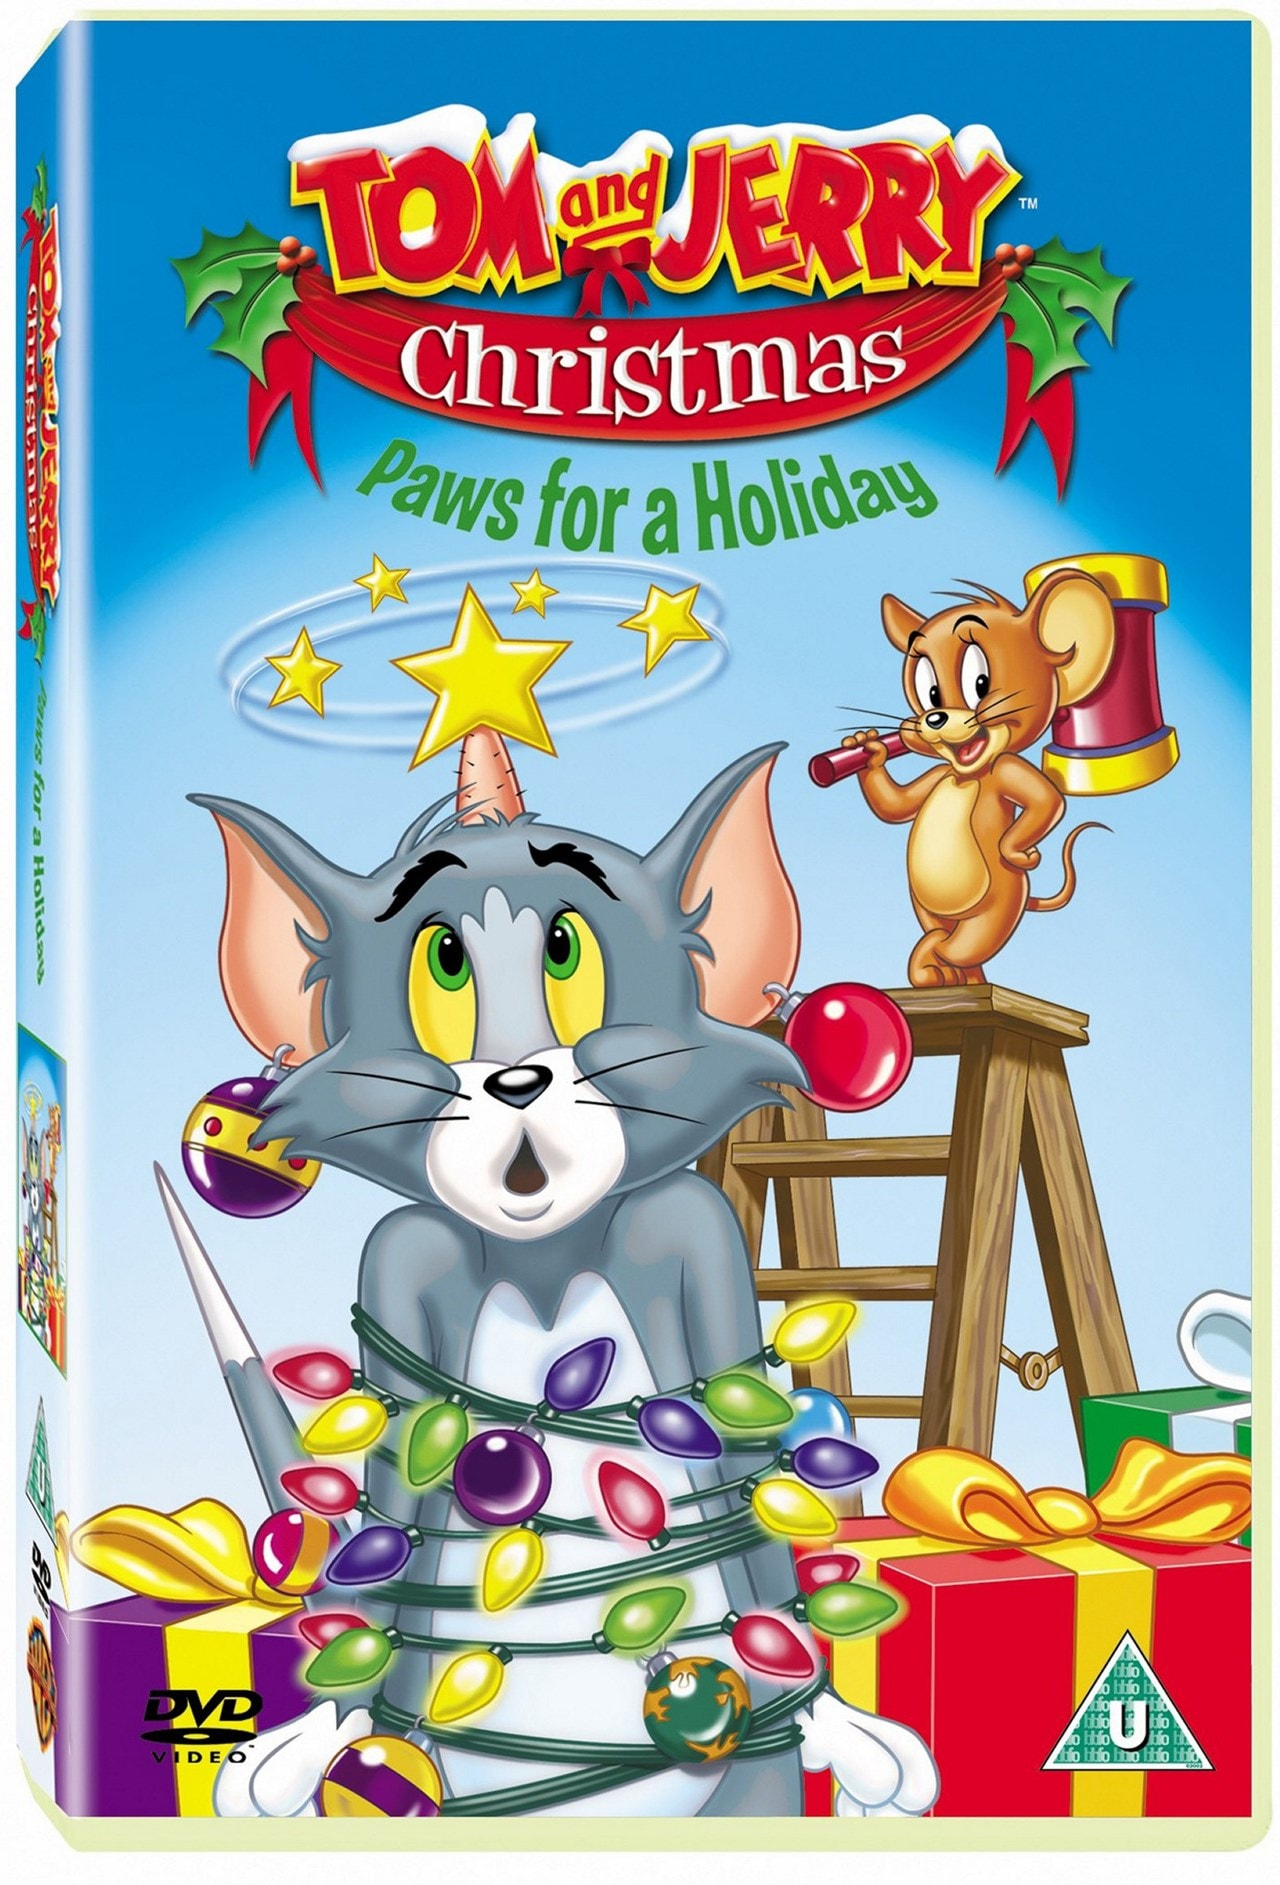 Tom and Jerry's Christmas: Paws for a Holiday - 2